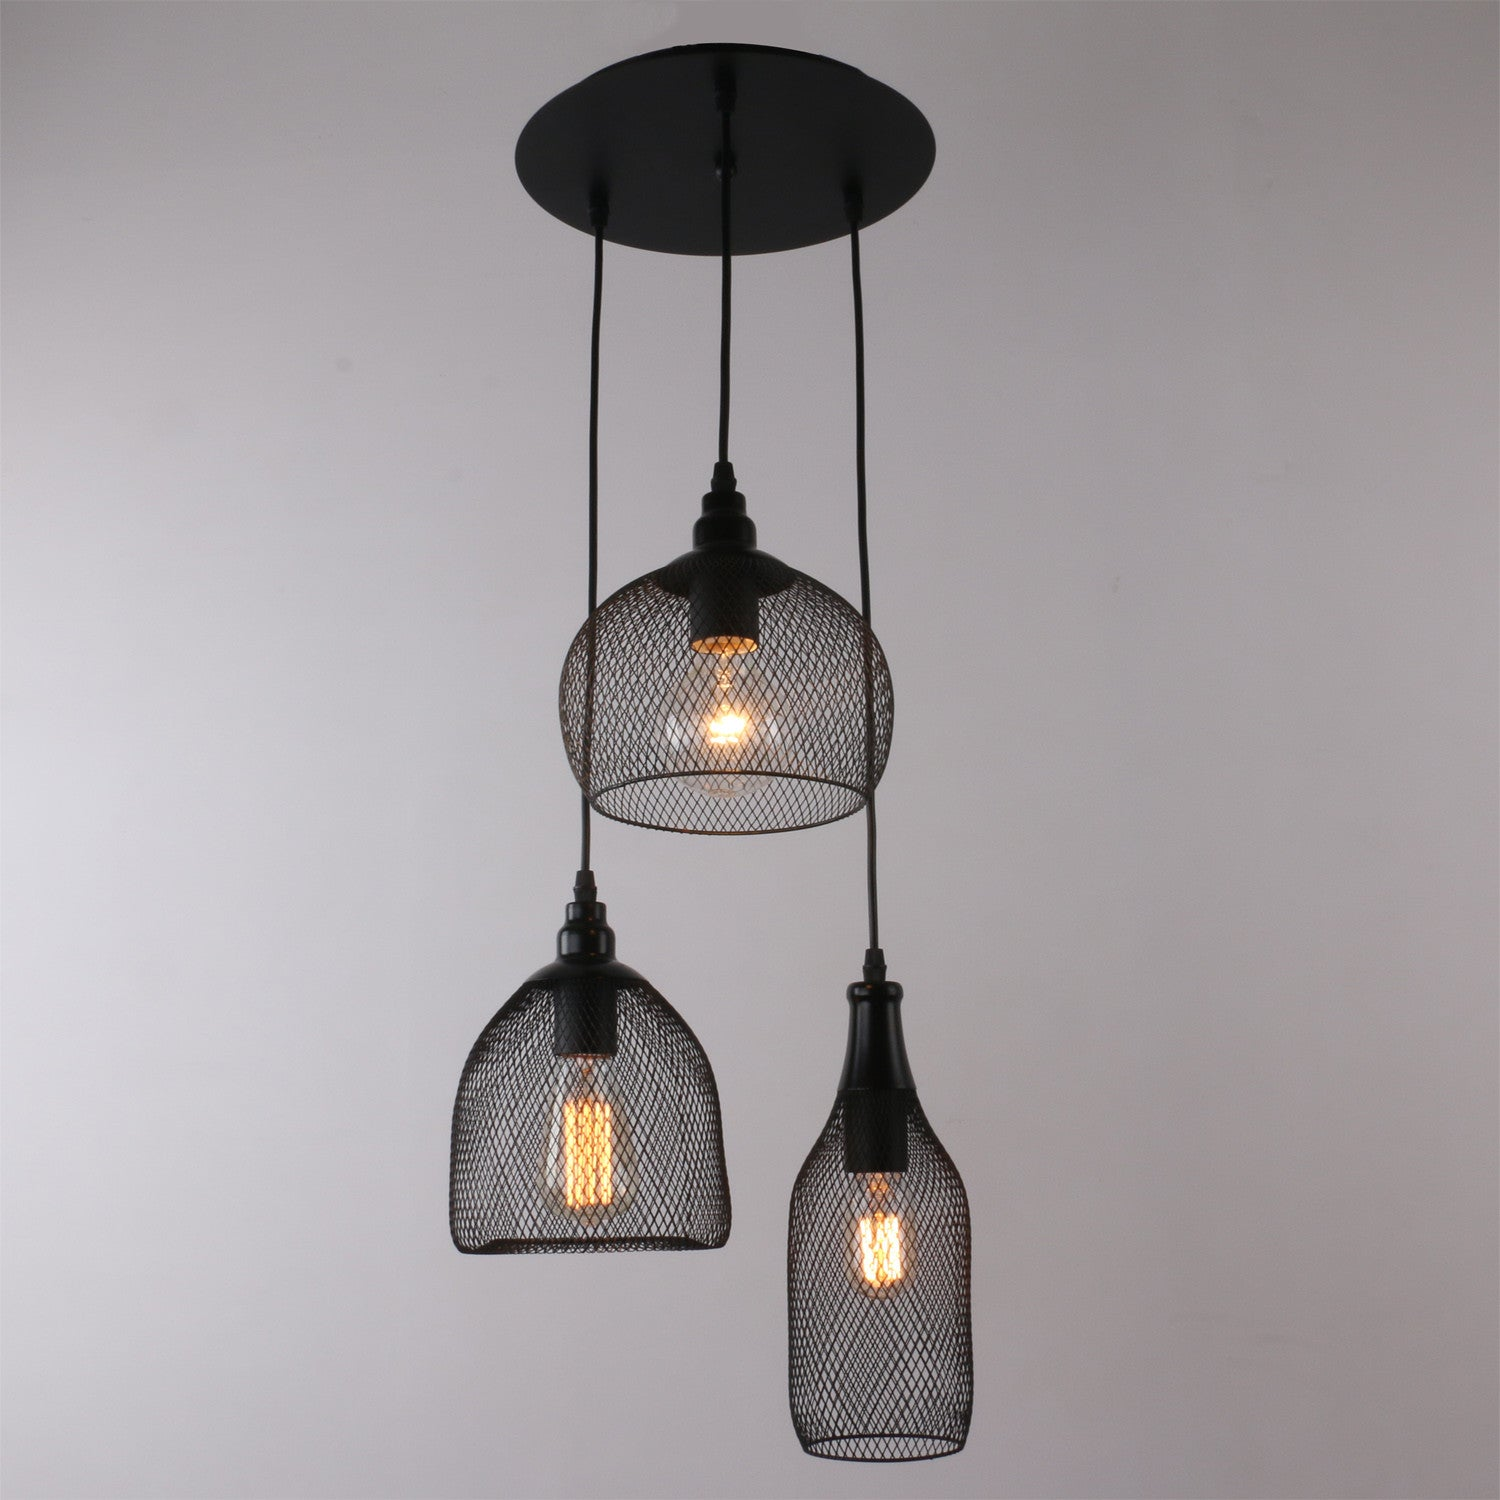 lighting pdx reviews mini wayfair light metal studio prange pendant wrought